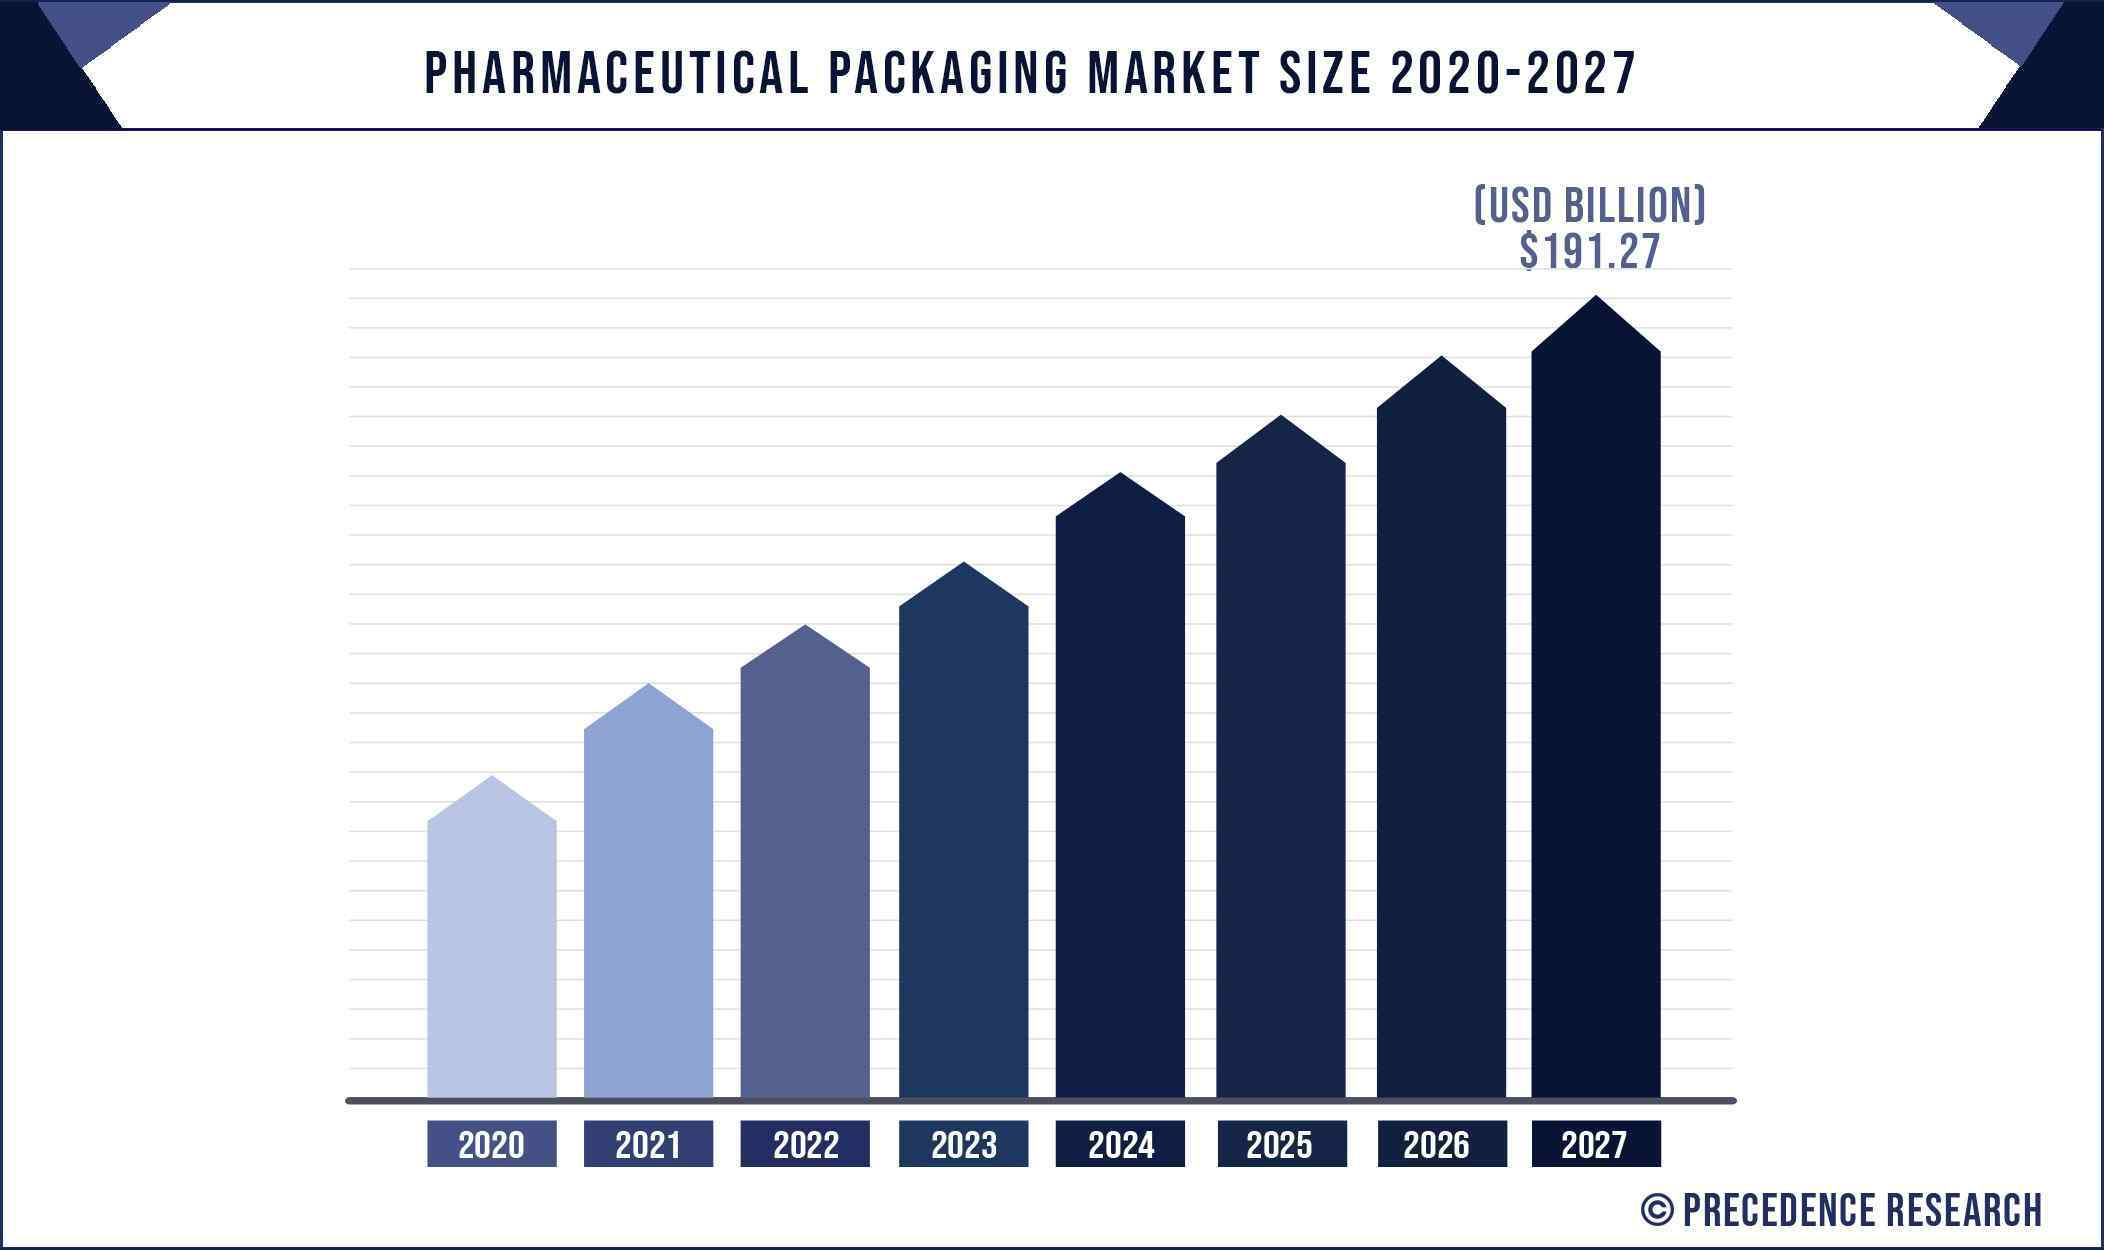 Pharmaceutical Packaging Market Size 2020 to 2027